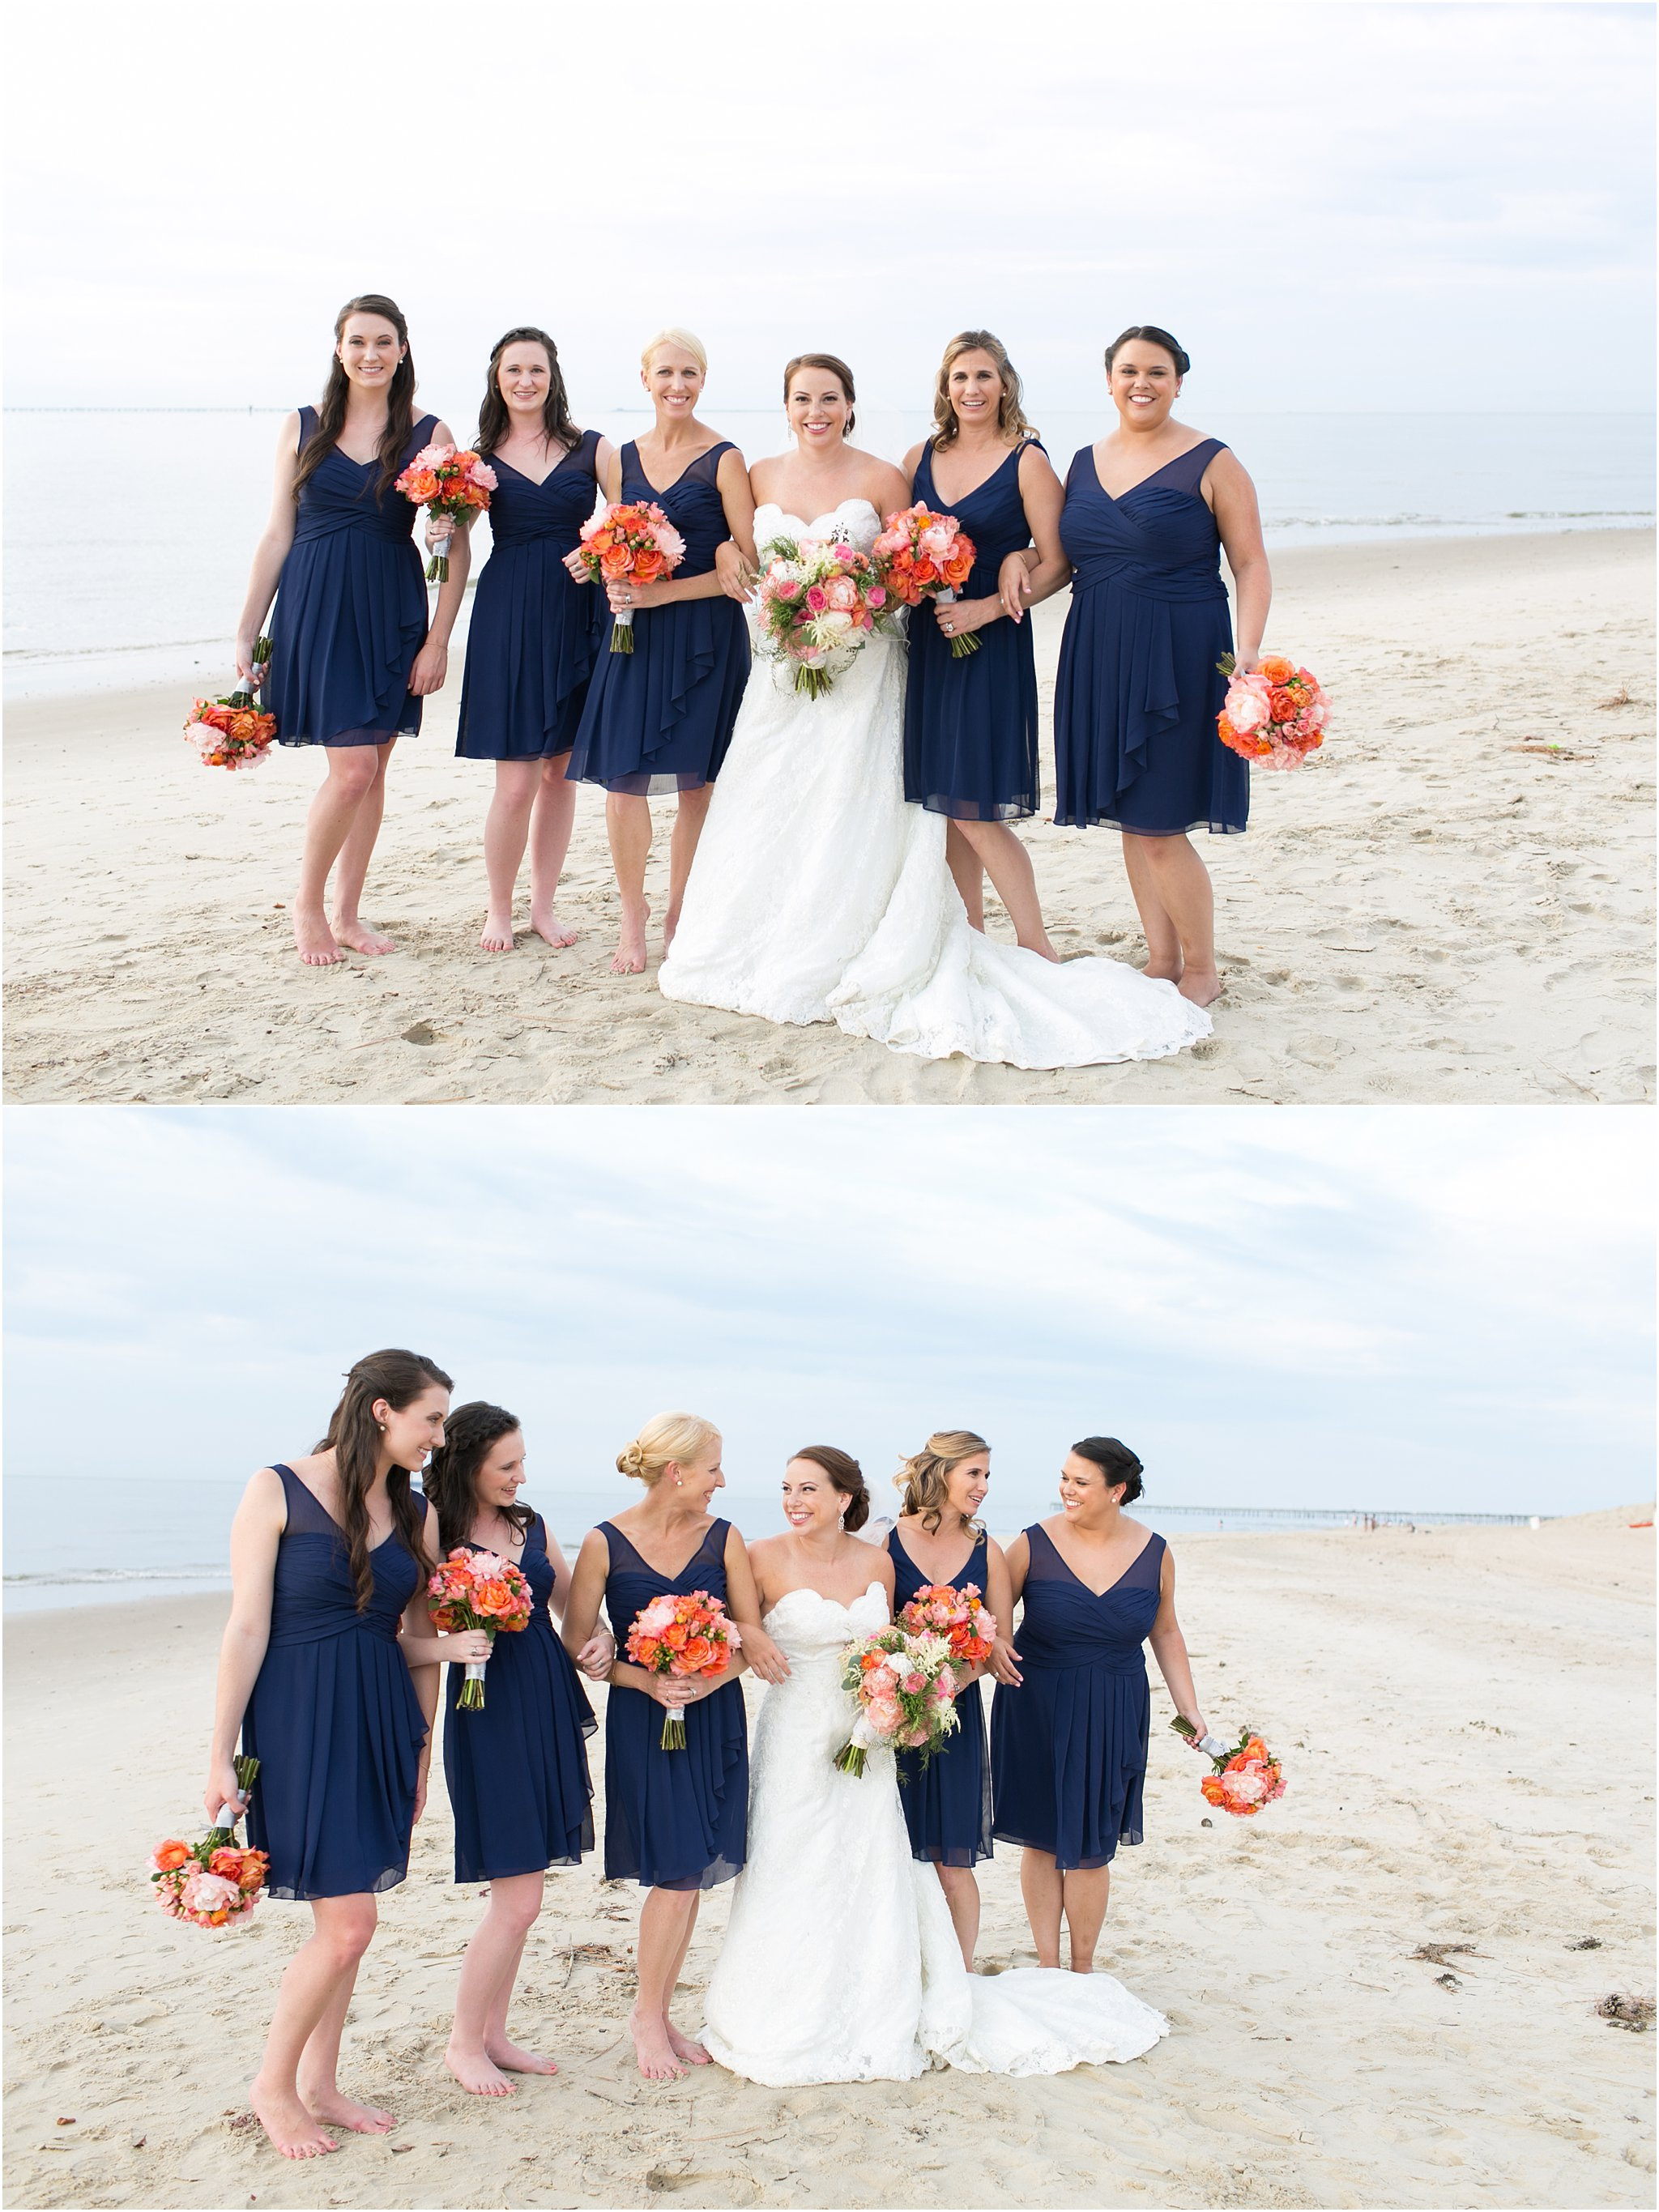 jessica_ryan_photography_wedding_photography_virginiabeach_virginia_candid_authentic_wedding_portraits_marina_shores_yacht_club_chesapeake_bay_1866